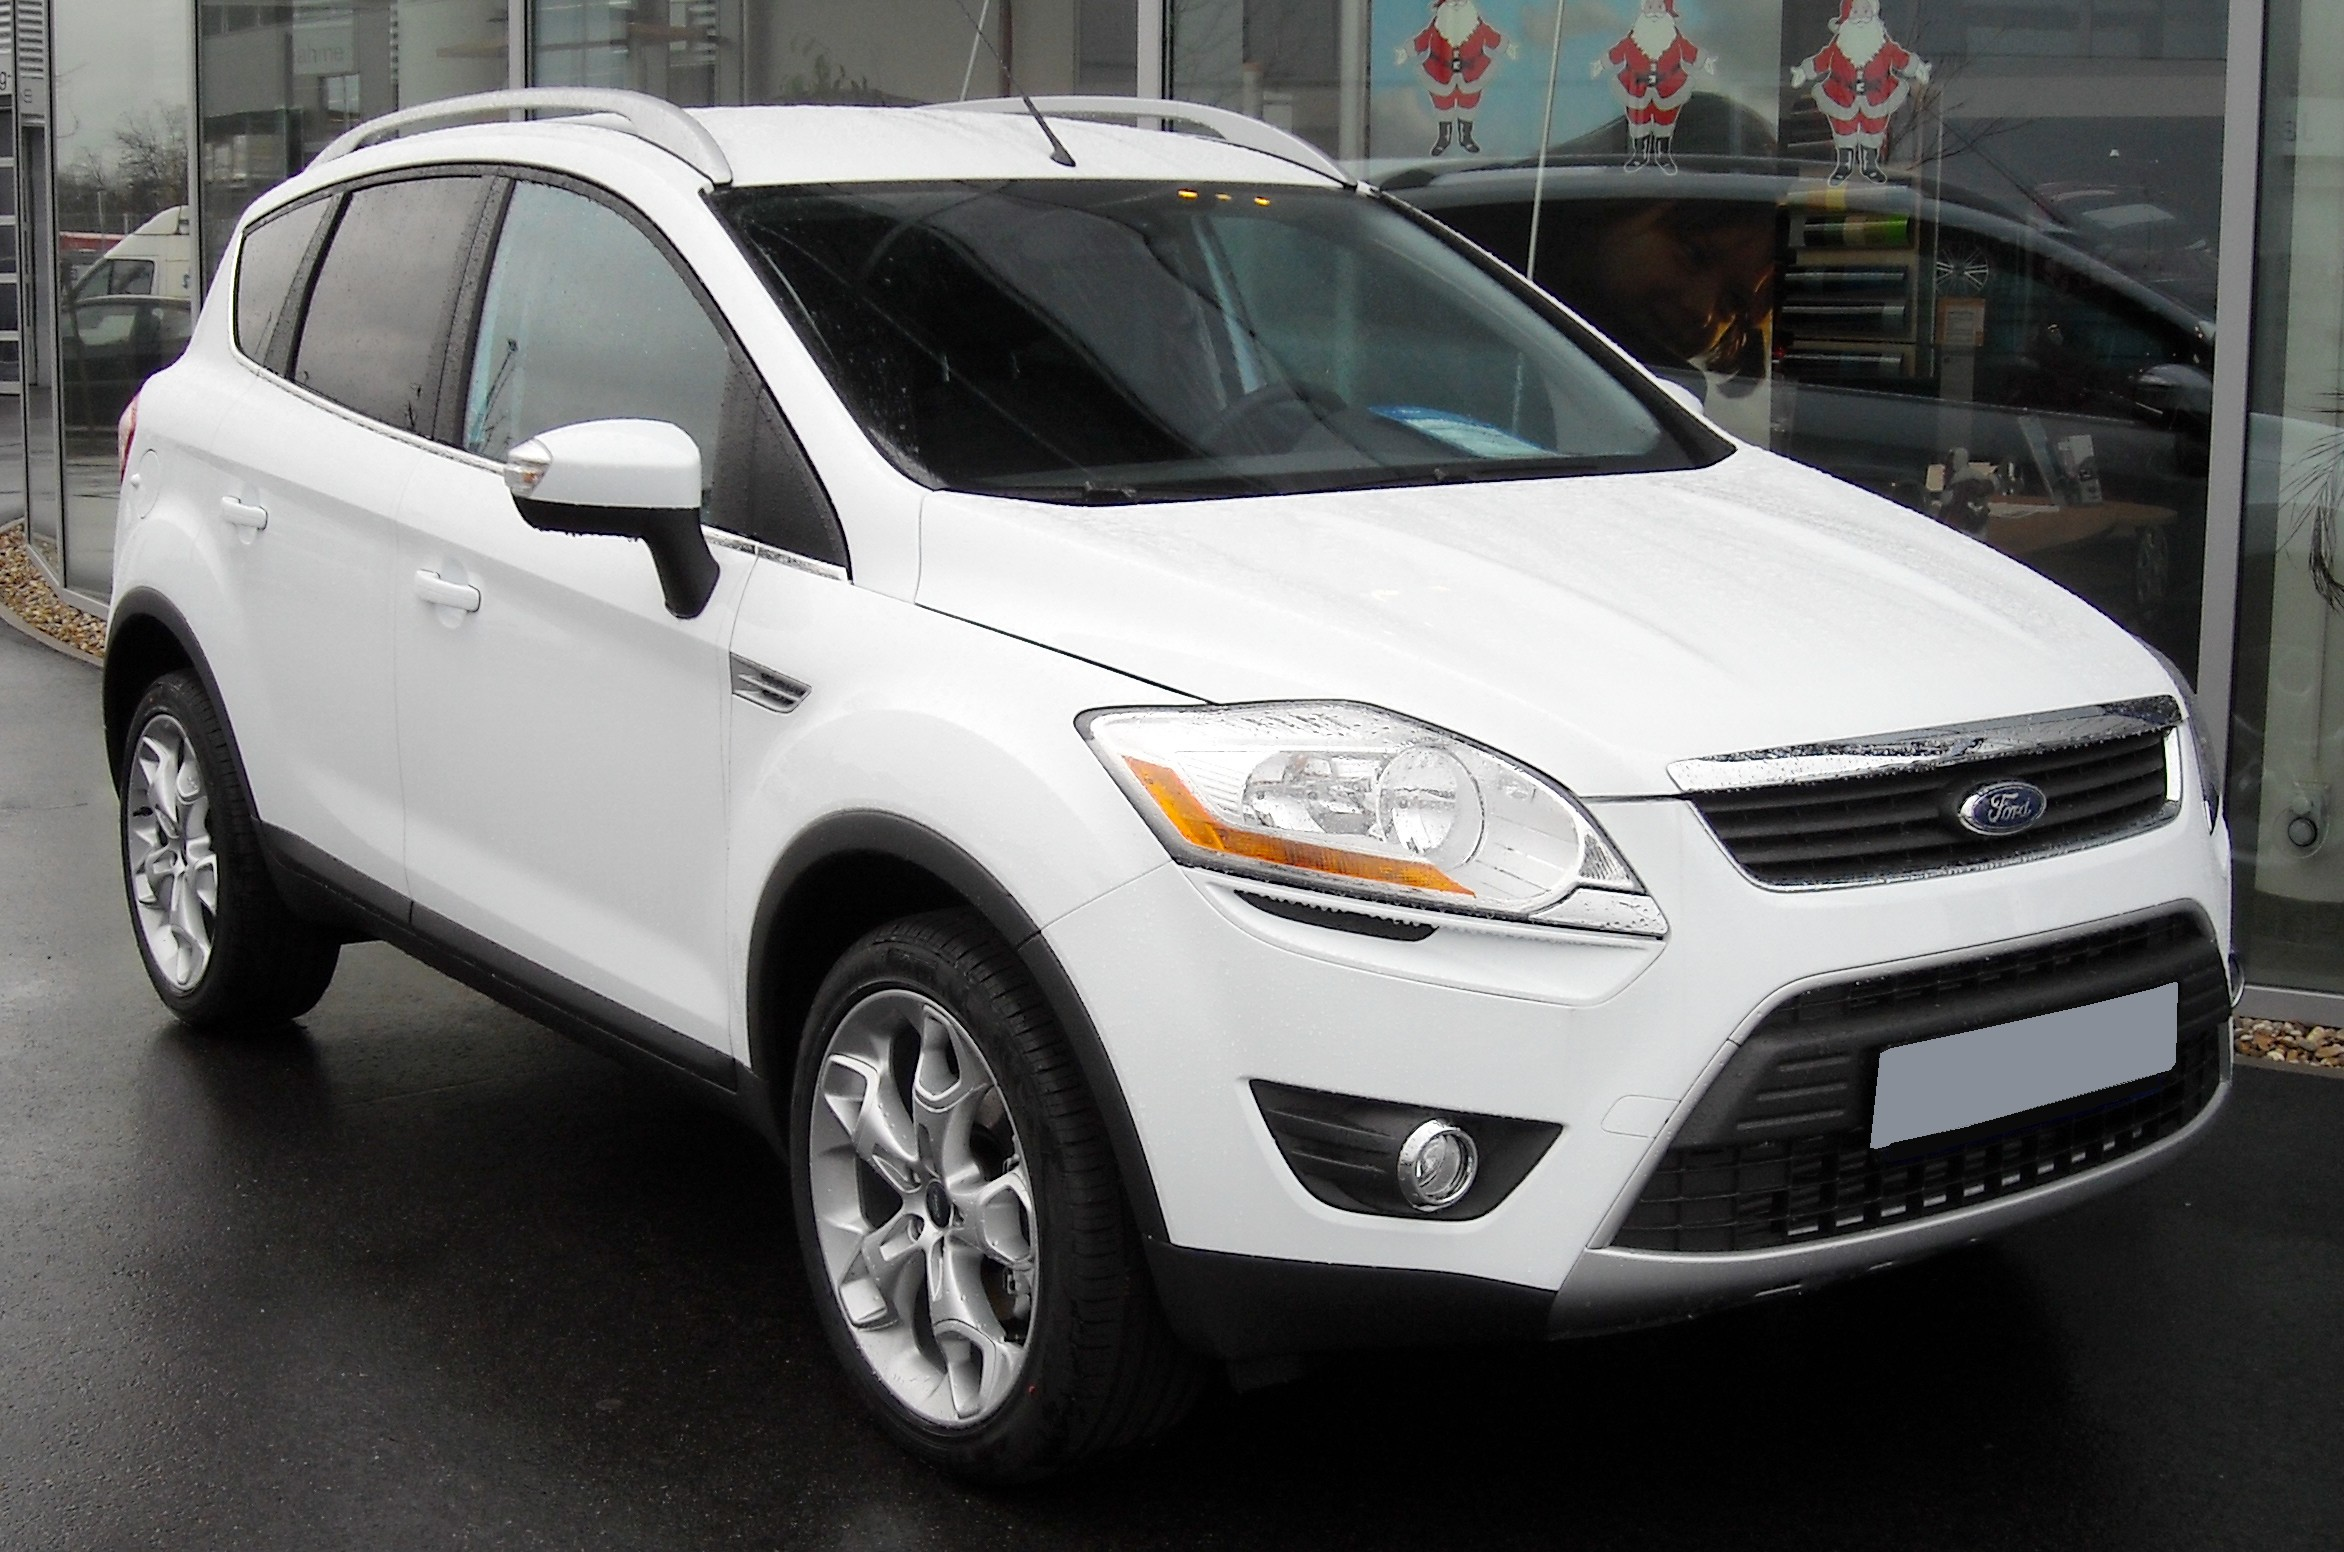 Ford Kuga Crossover 2008